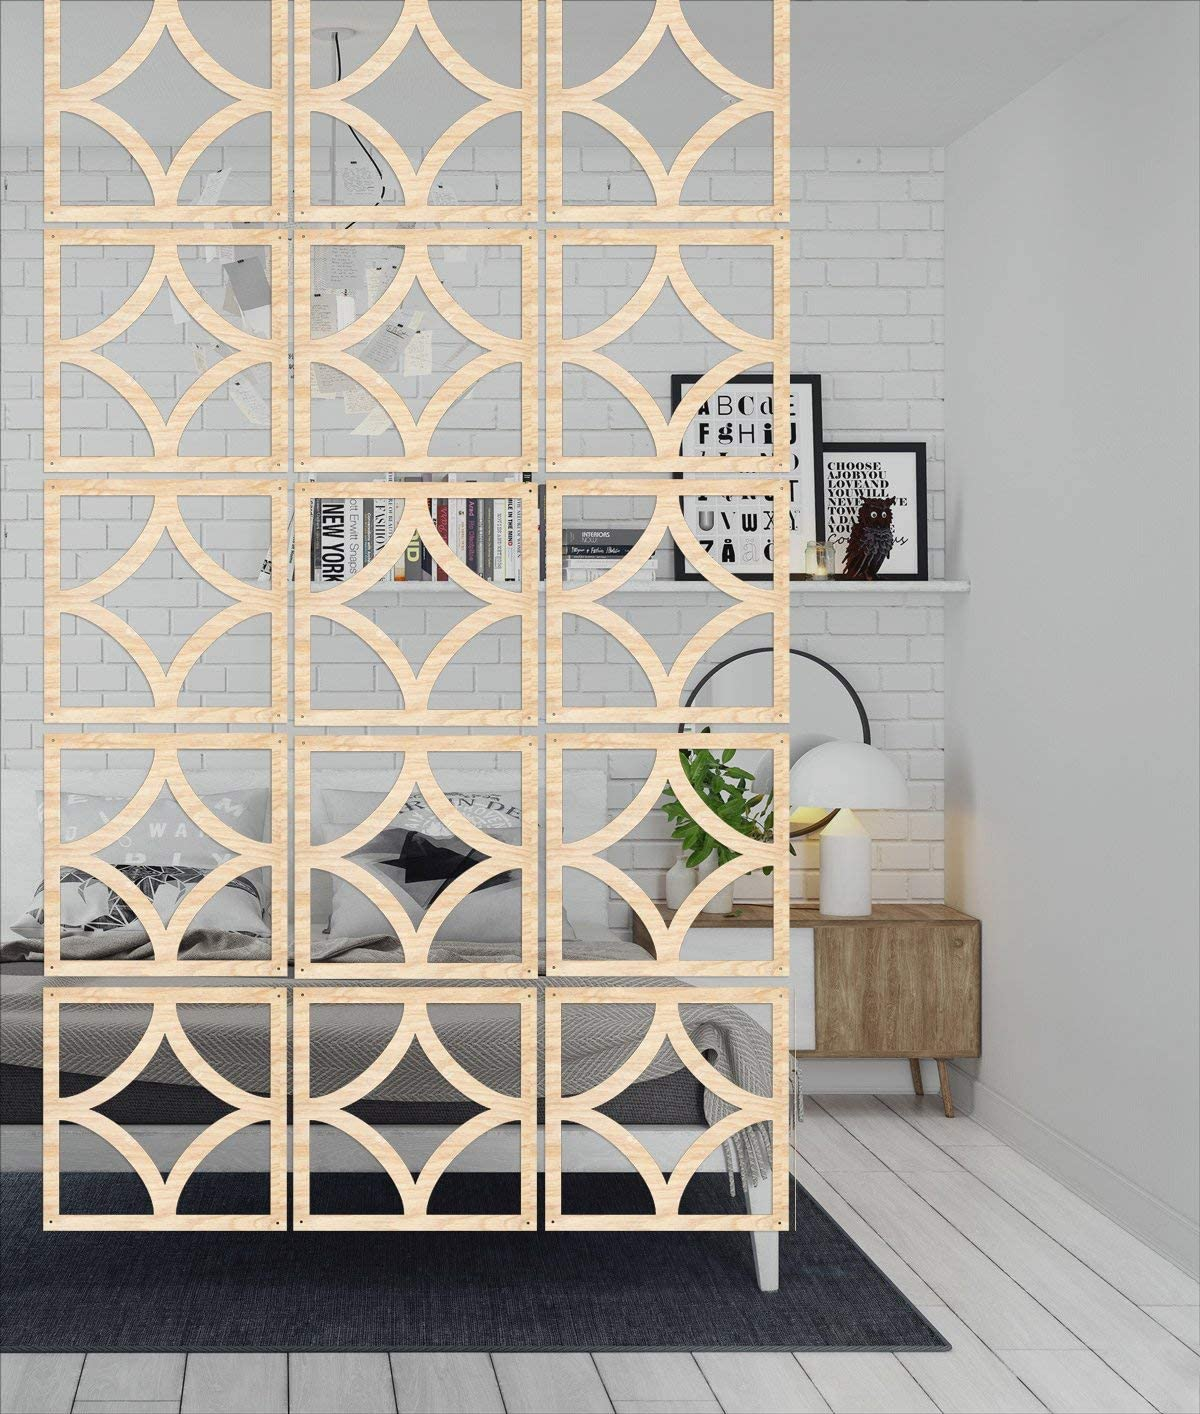 discount Wooden Room partition Fashionable - Style Rustic cm 12 29x29 Pieces